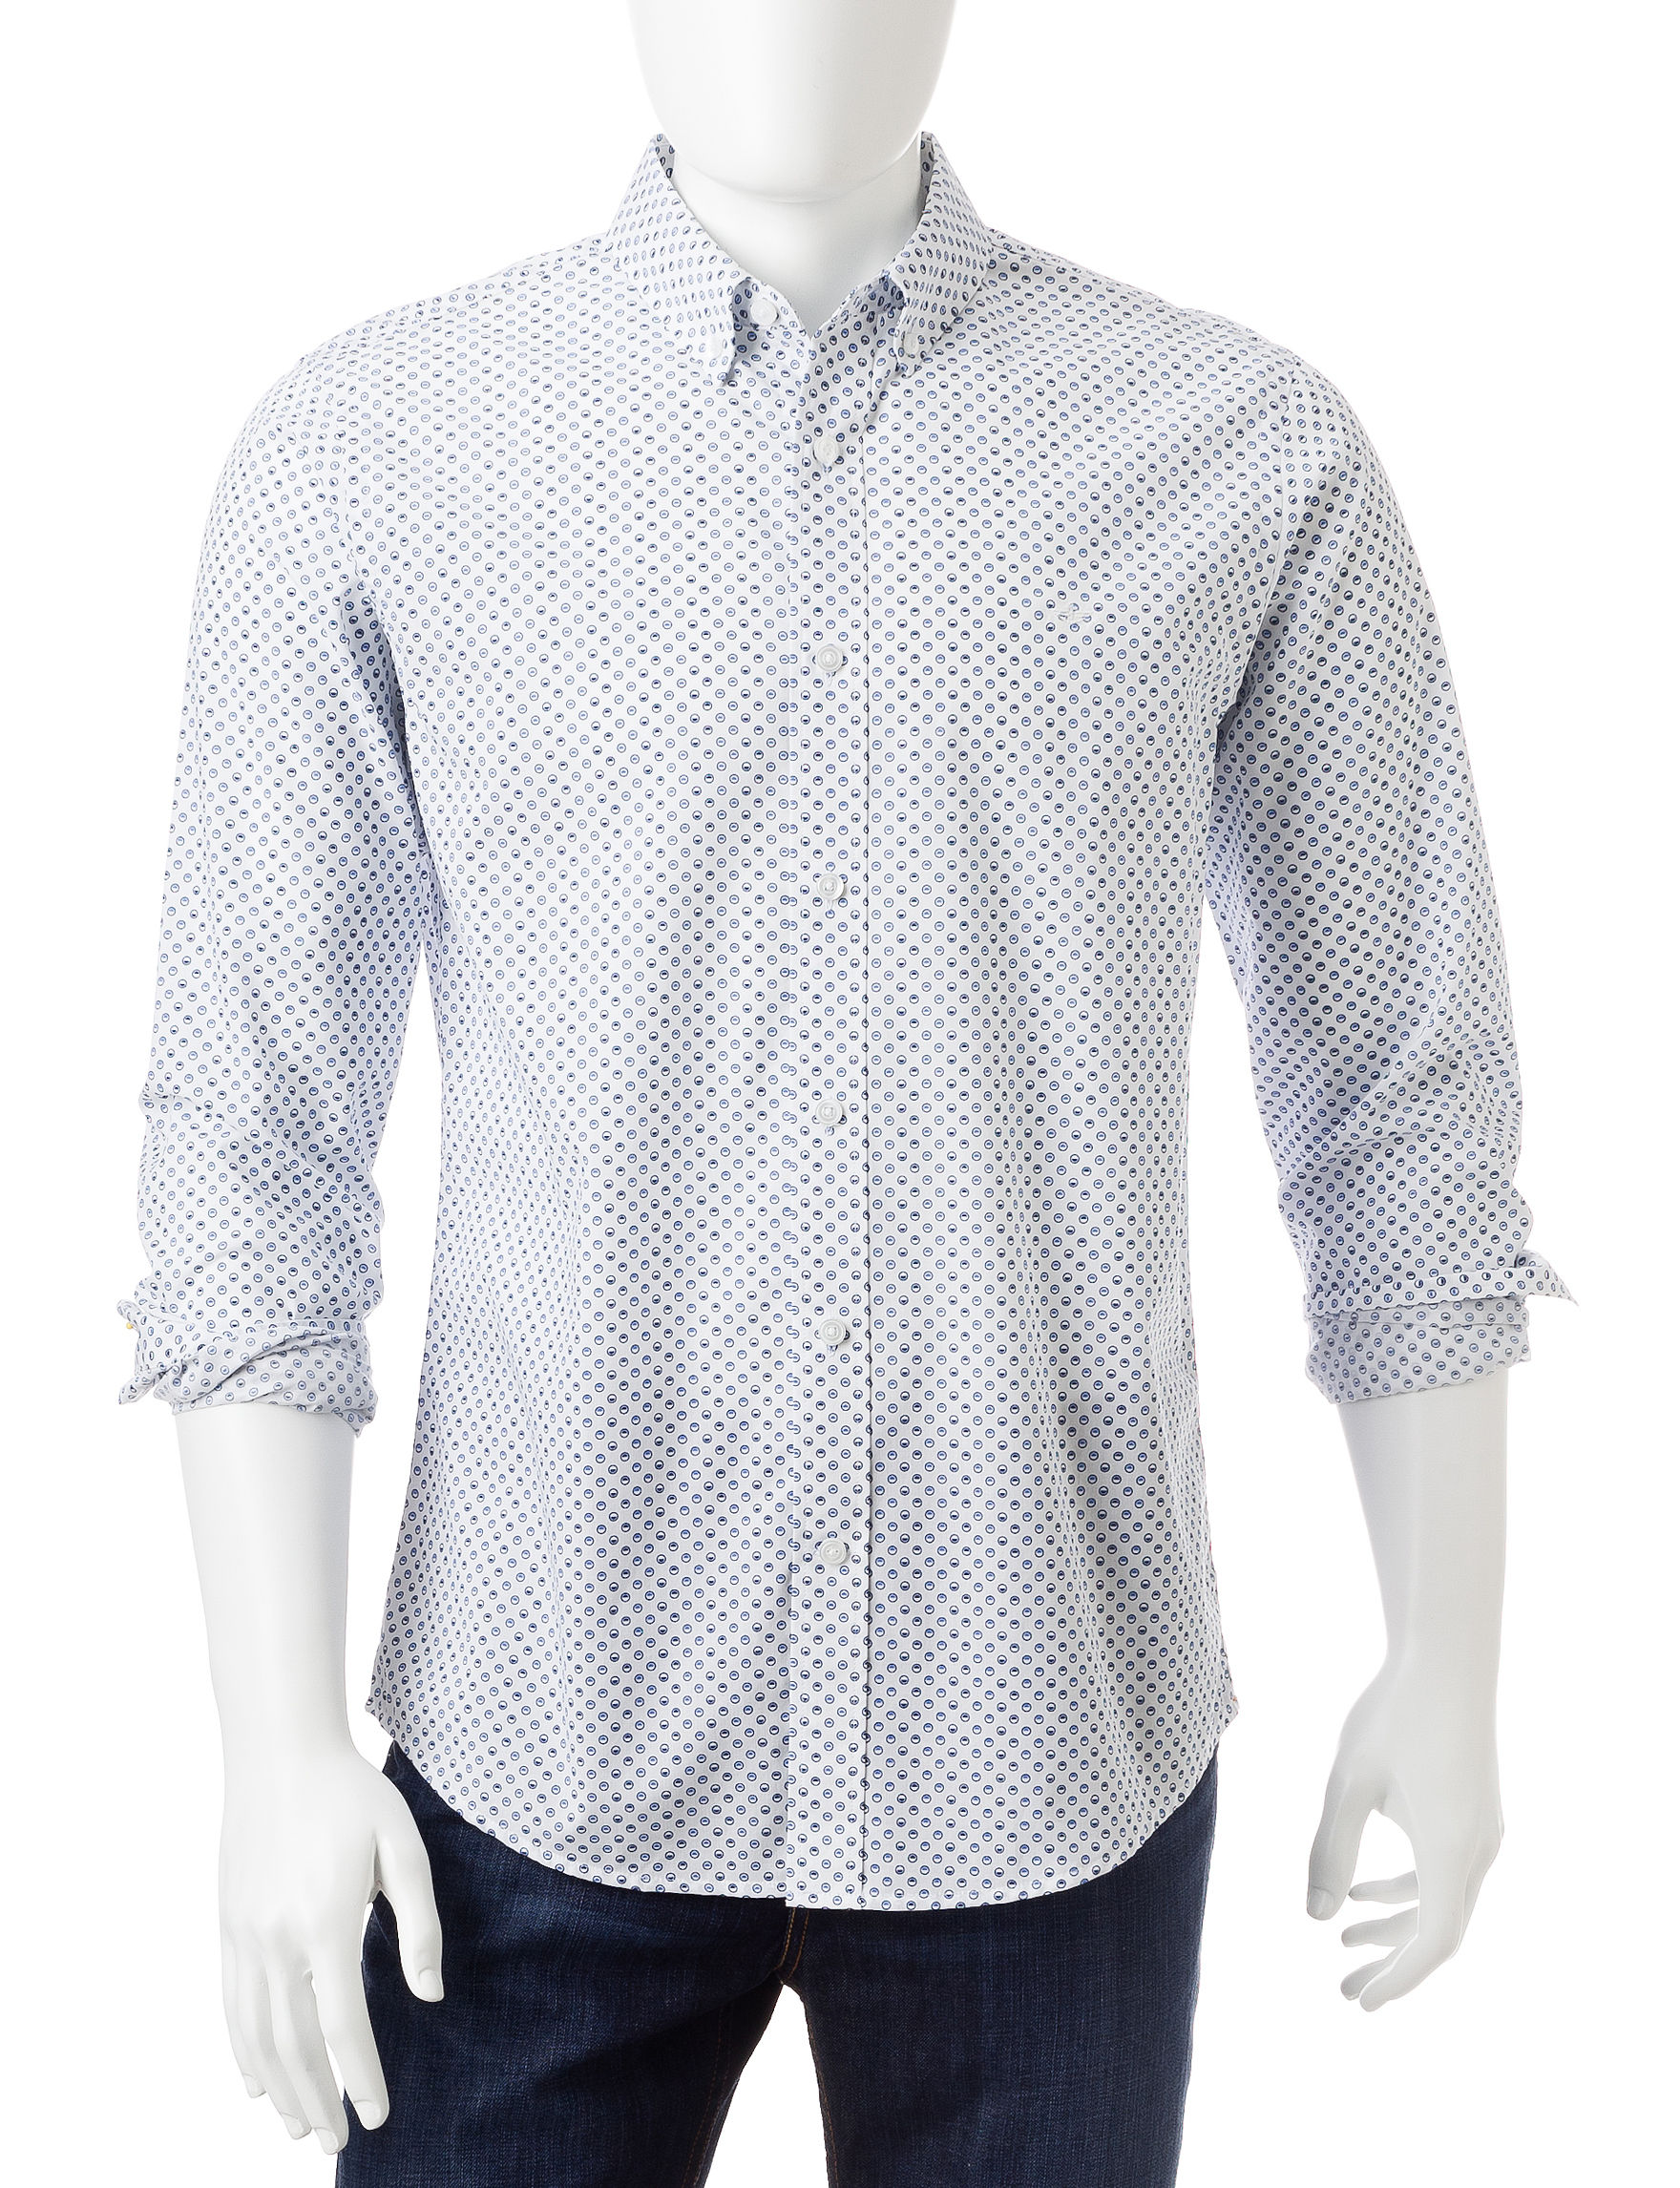 Dockers Paper White Casual Button Down Shirts